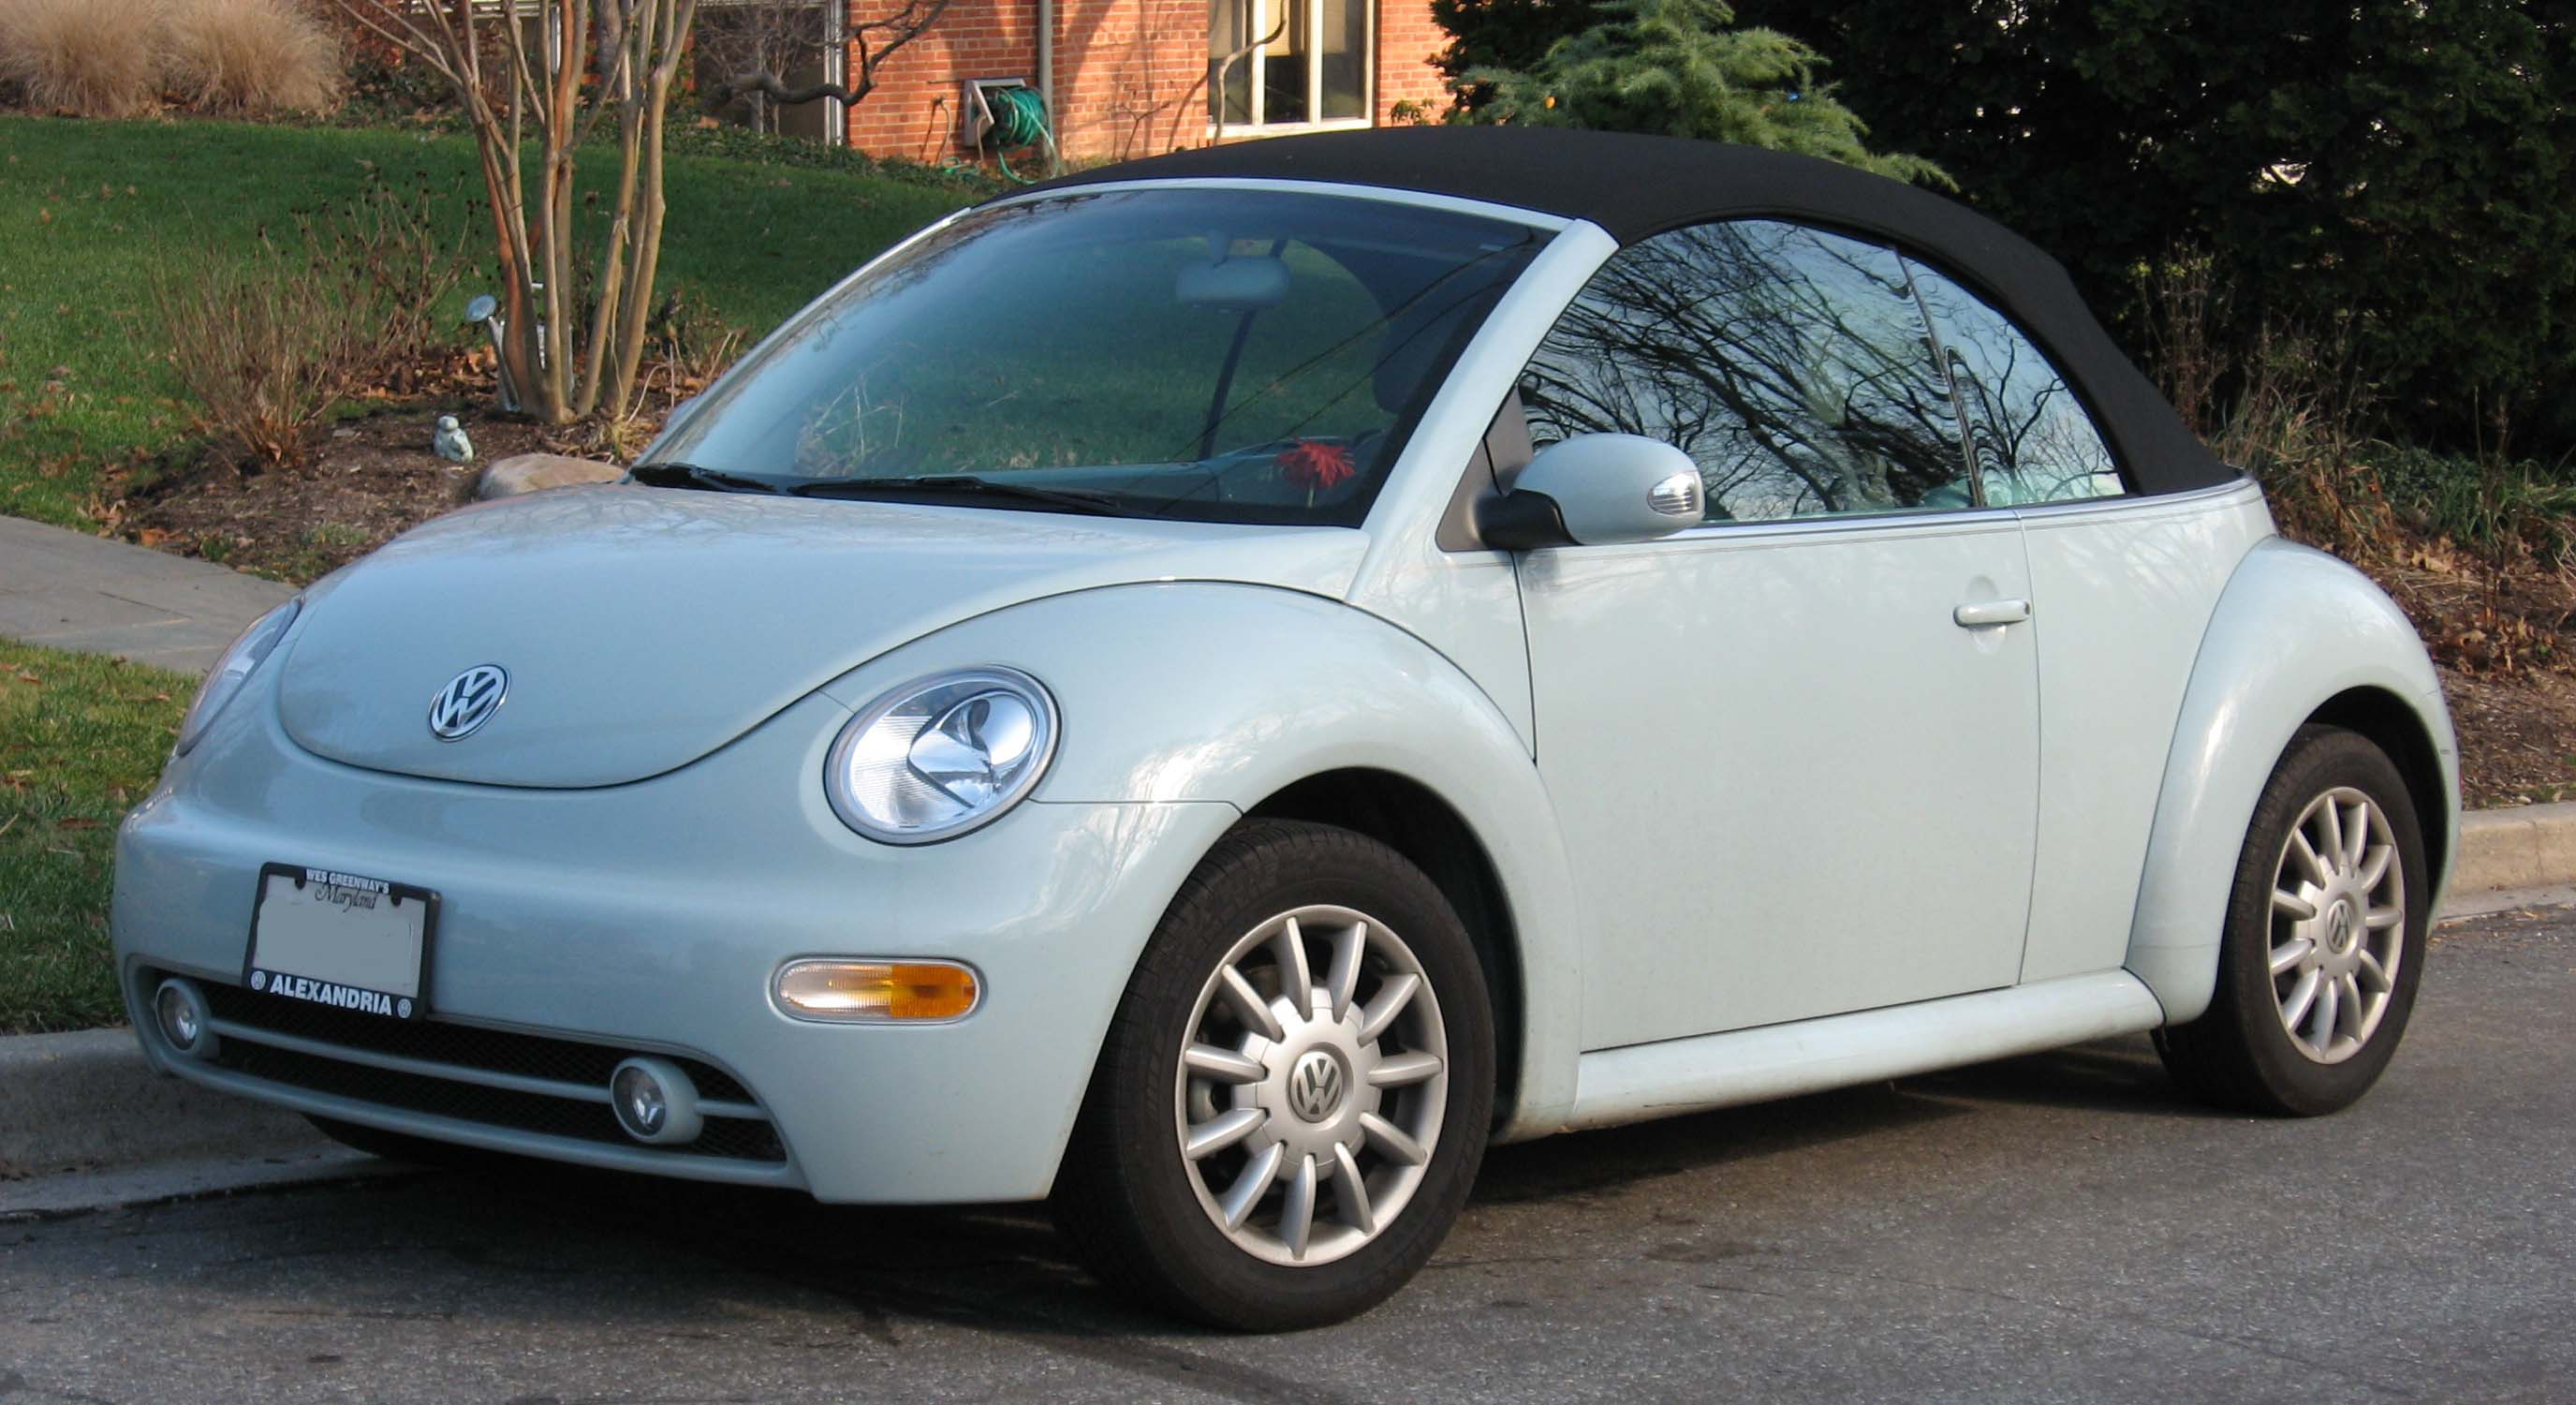 Punch Buggy Volkswagen >> File:Volkswagen-New-Beetle-Convertible.jpg